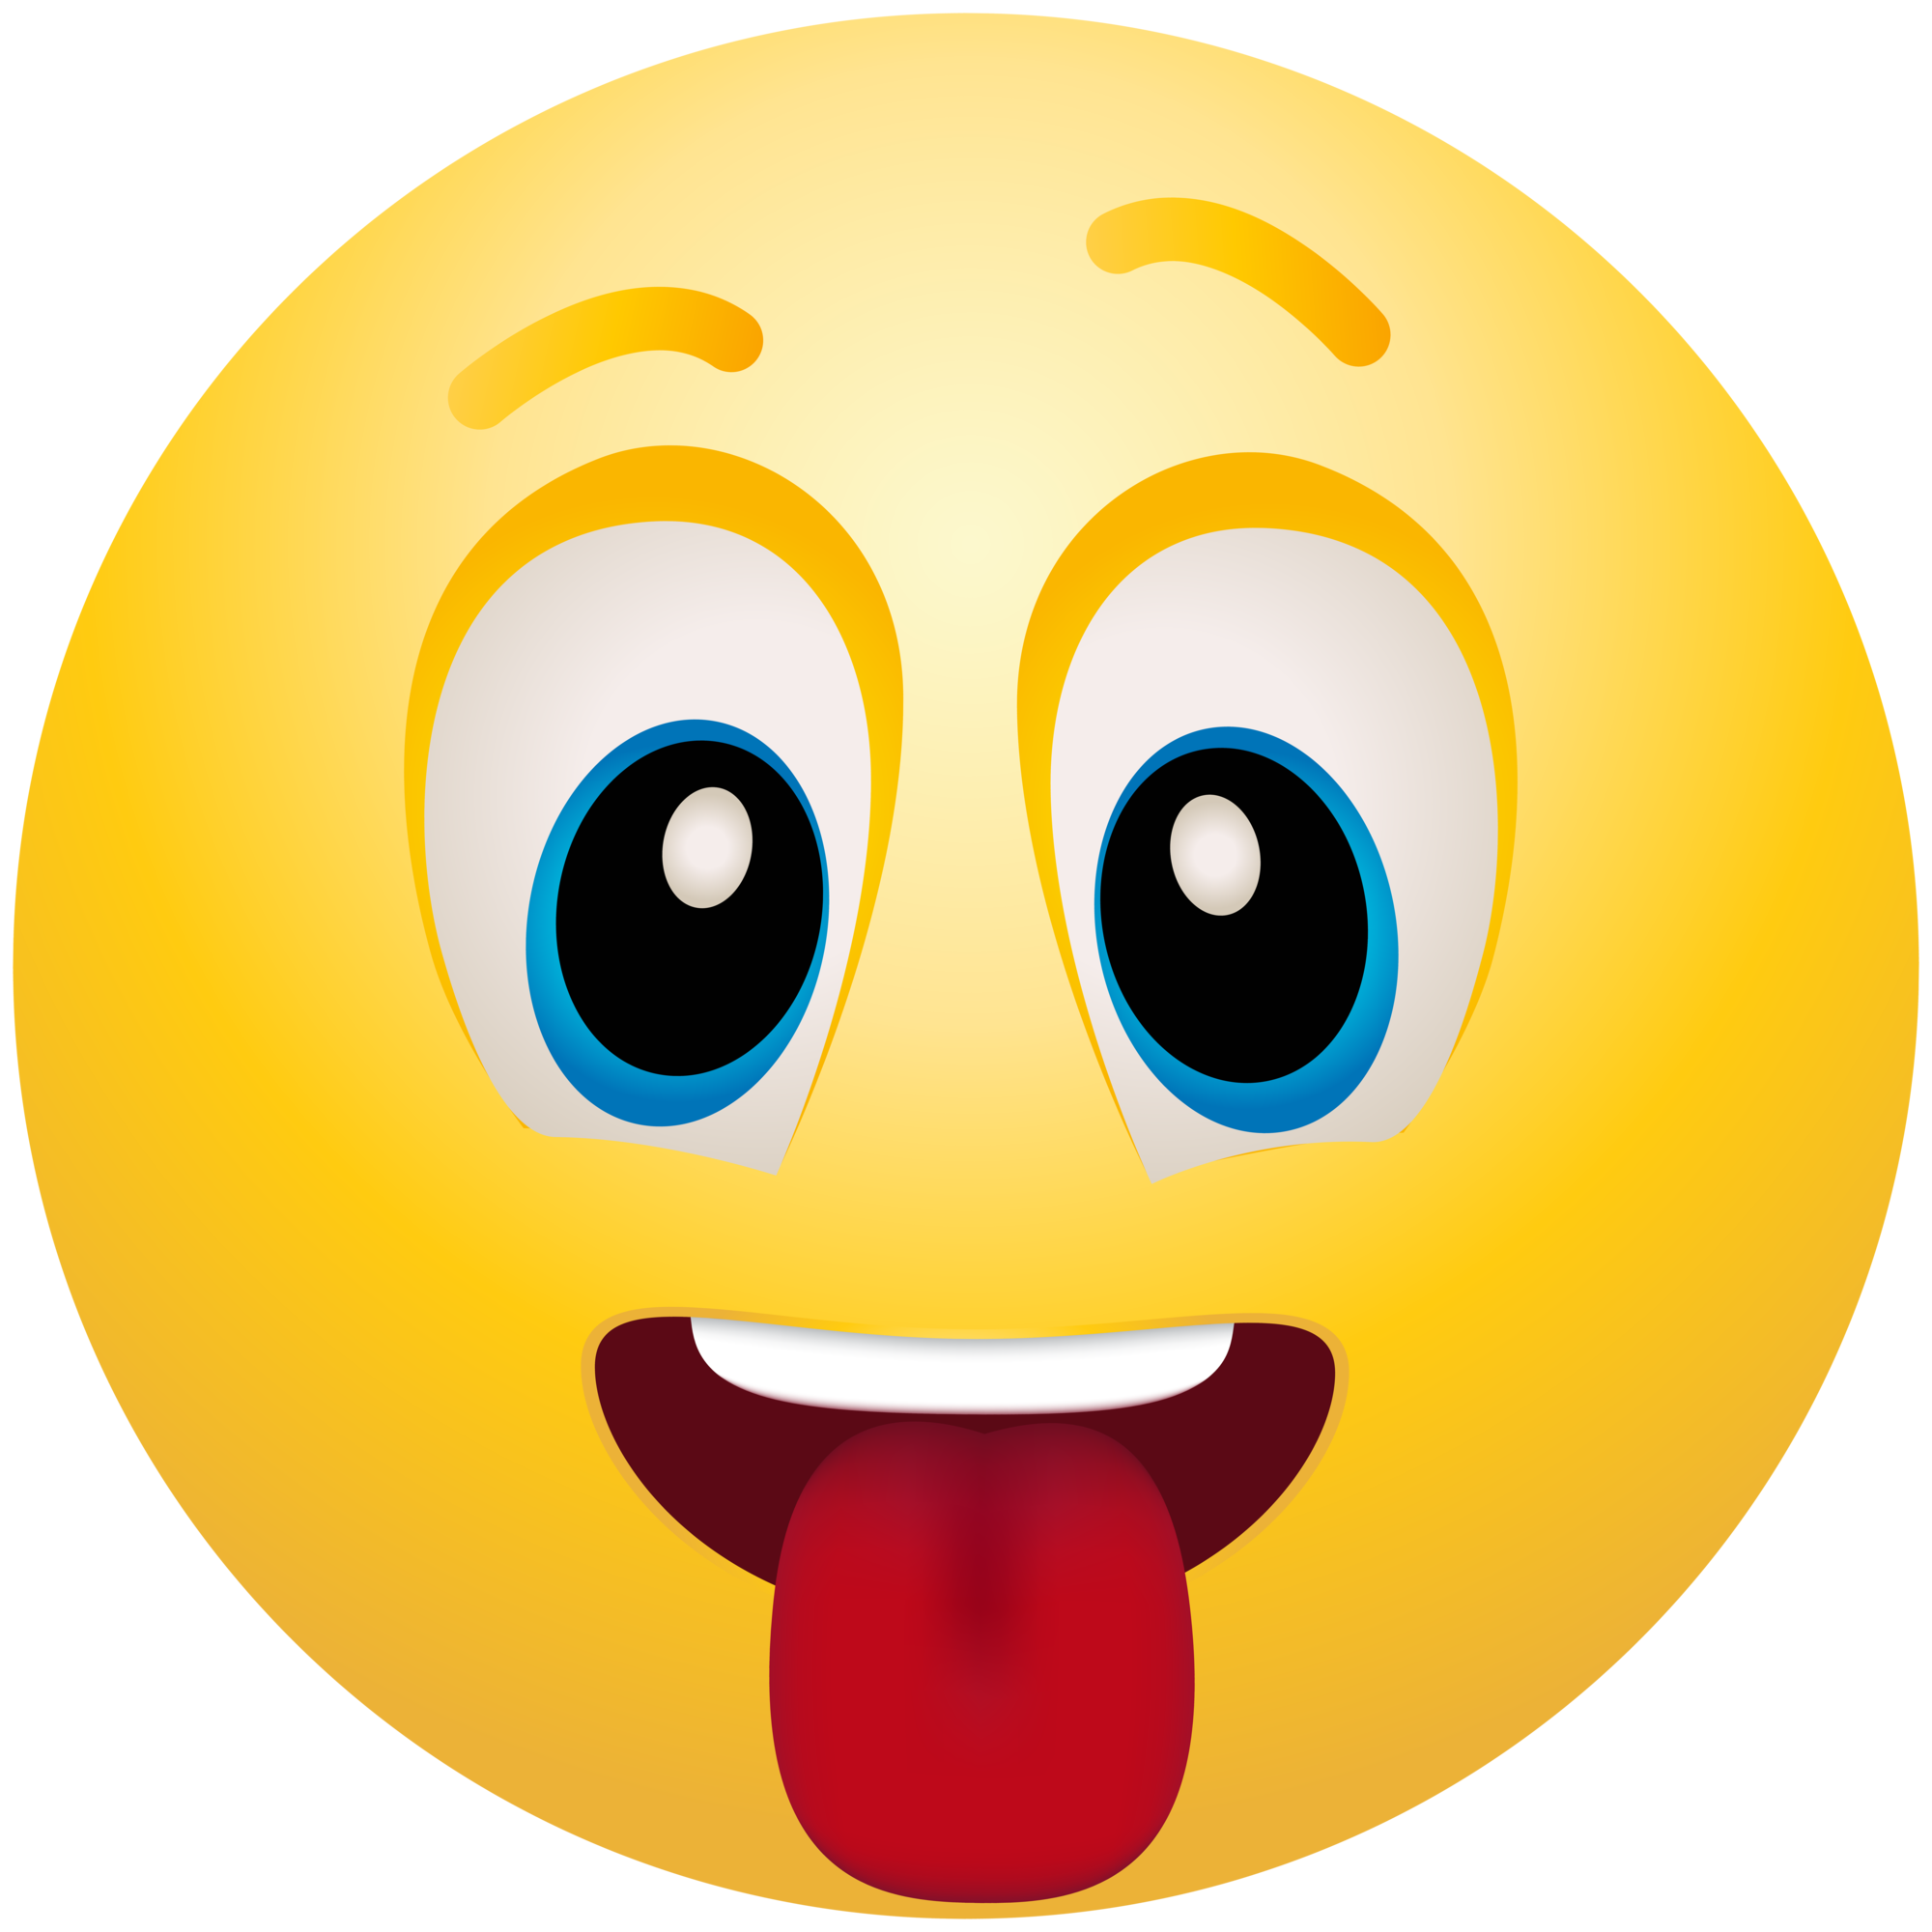 Tongue Out Emoticon Emoji Clipart Info.